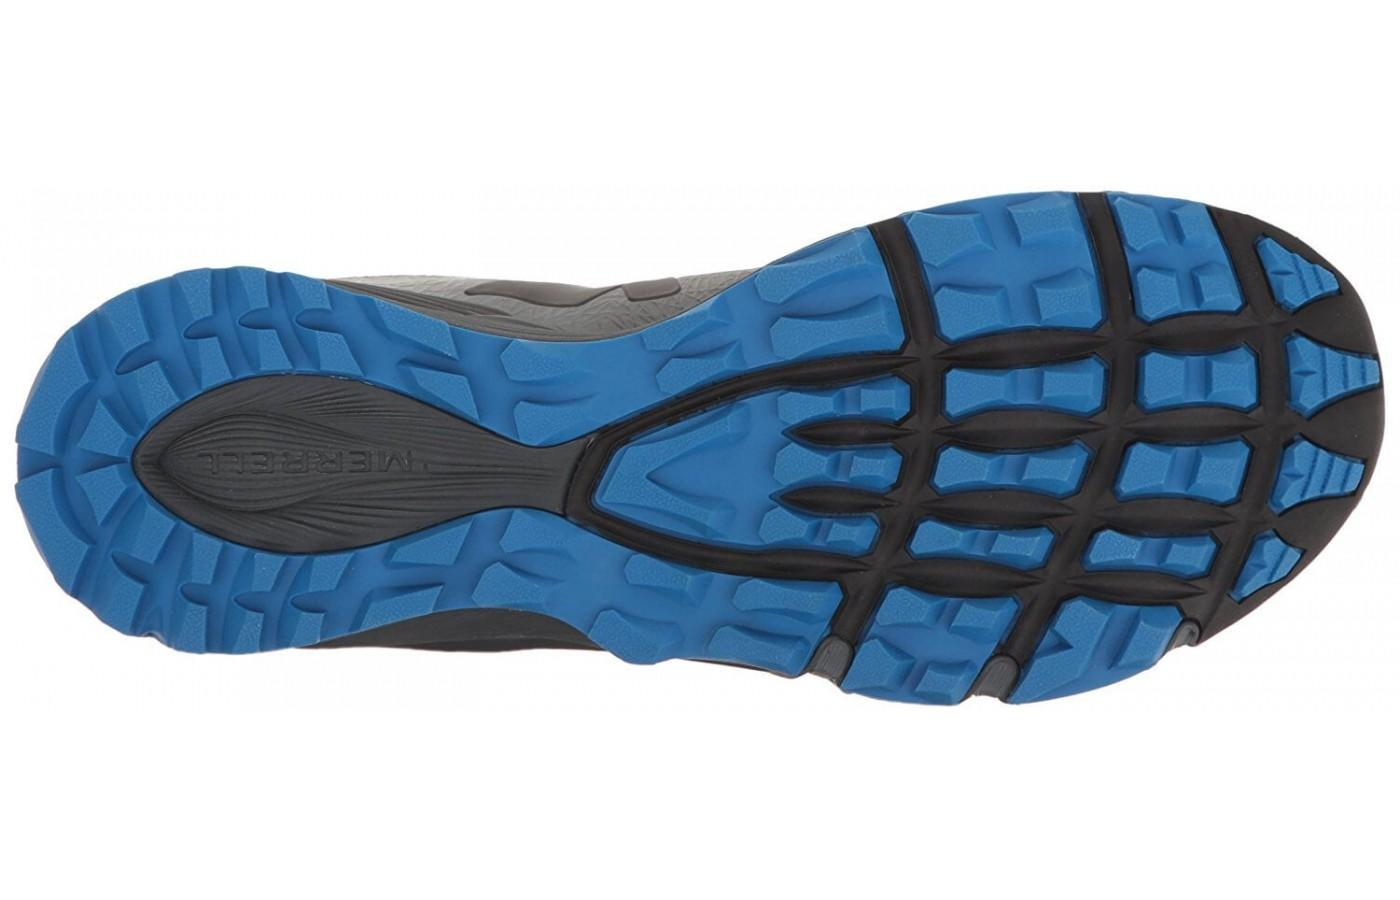 Anatomically Designed Outsole